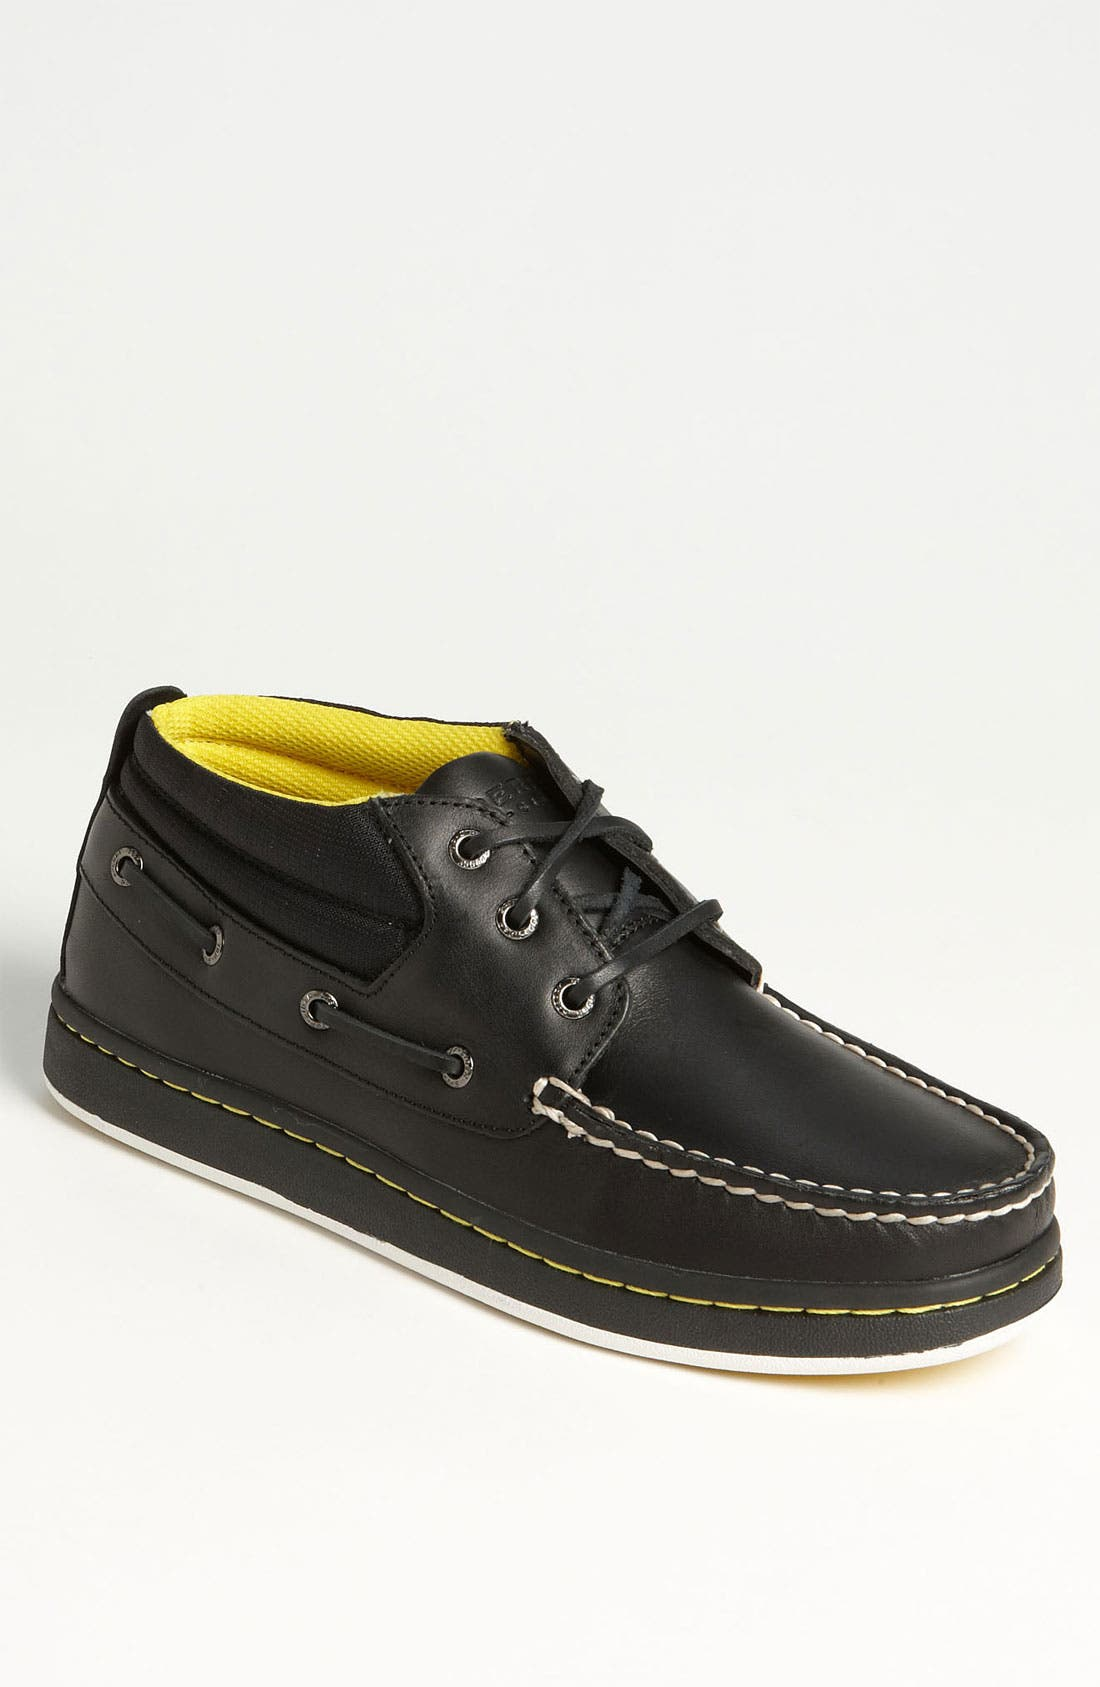 Alternate Image 1 Selected - Sperry Top-Sider® 'Sperry Cup' Chukka Boot (Online Only)